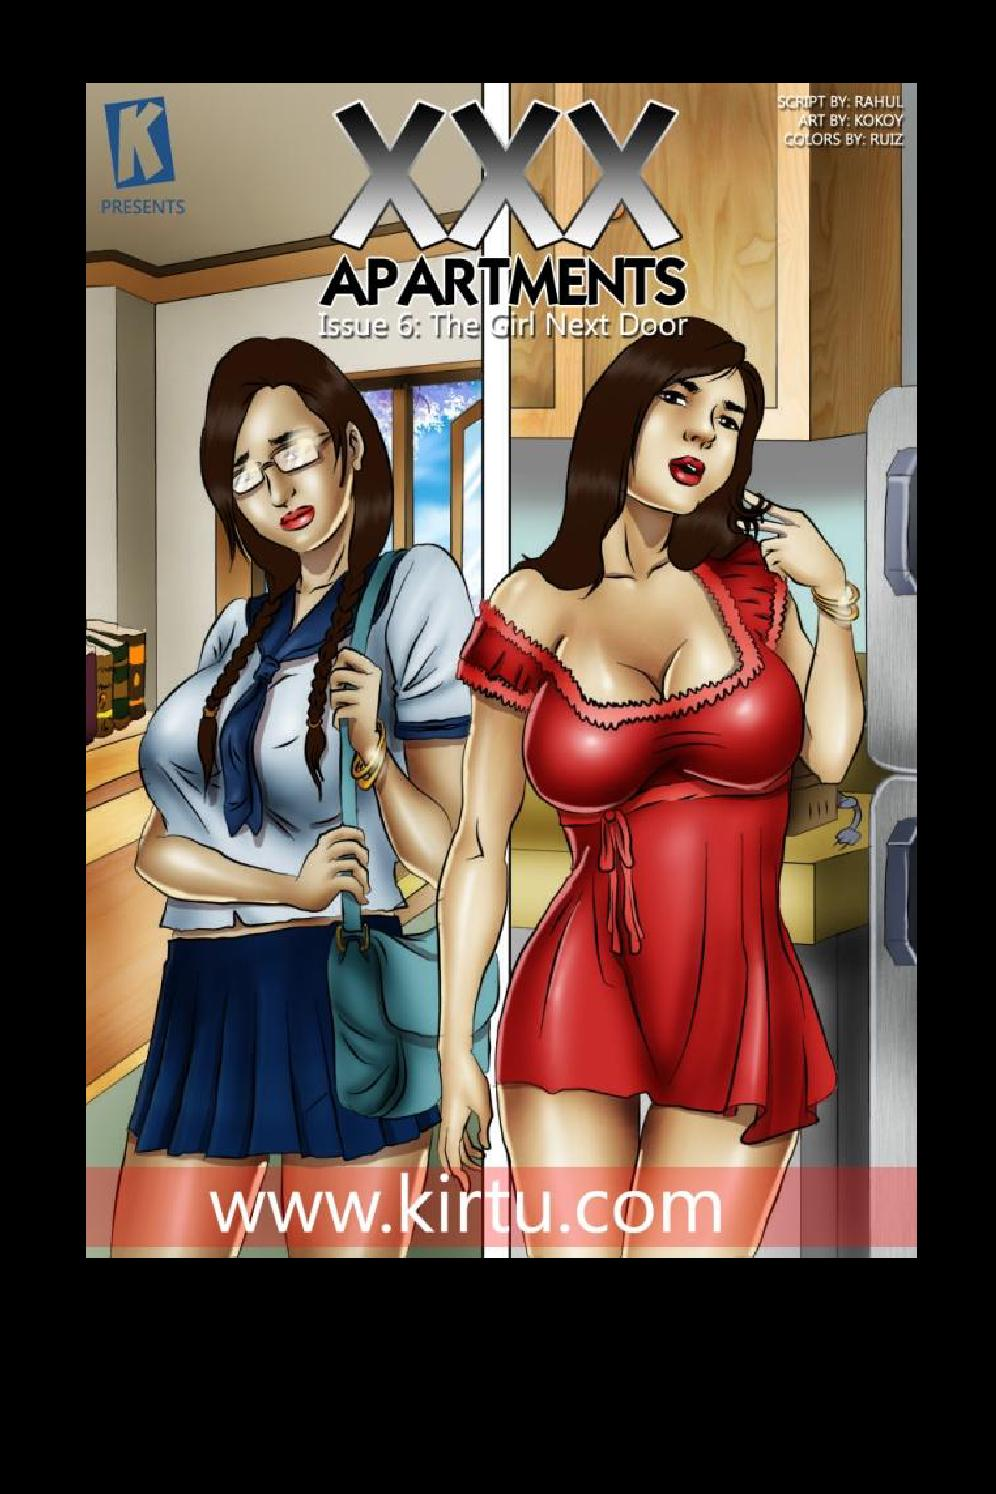 Xxx apartments 6 by Fifi - issuu